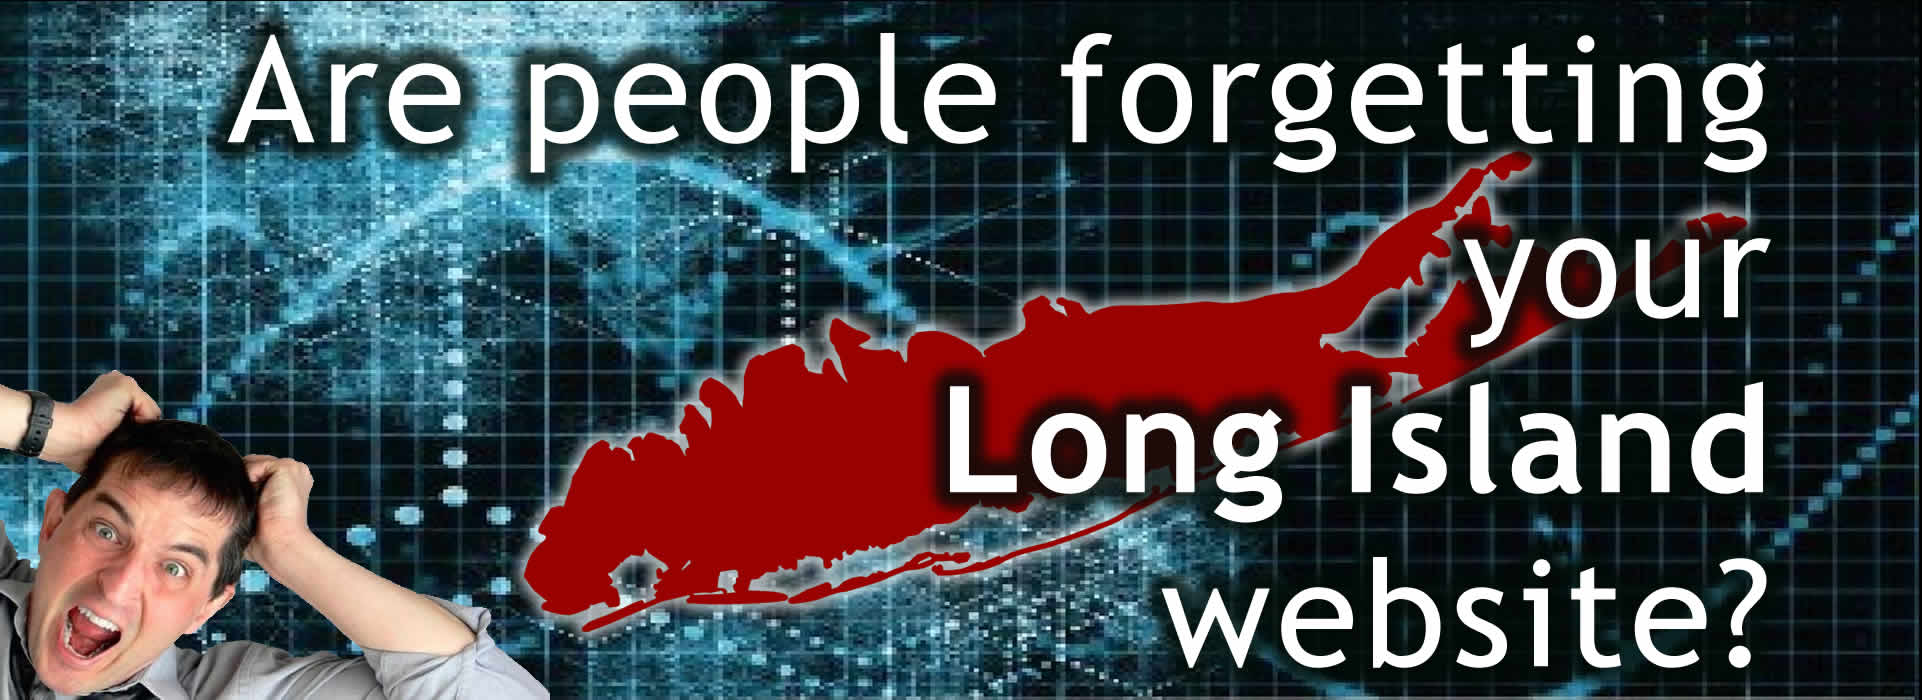 Are people forgetting your Long Island website?